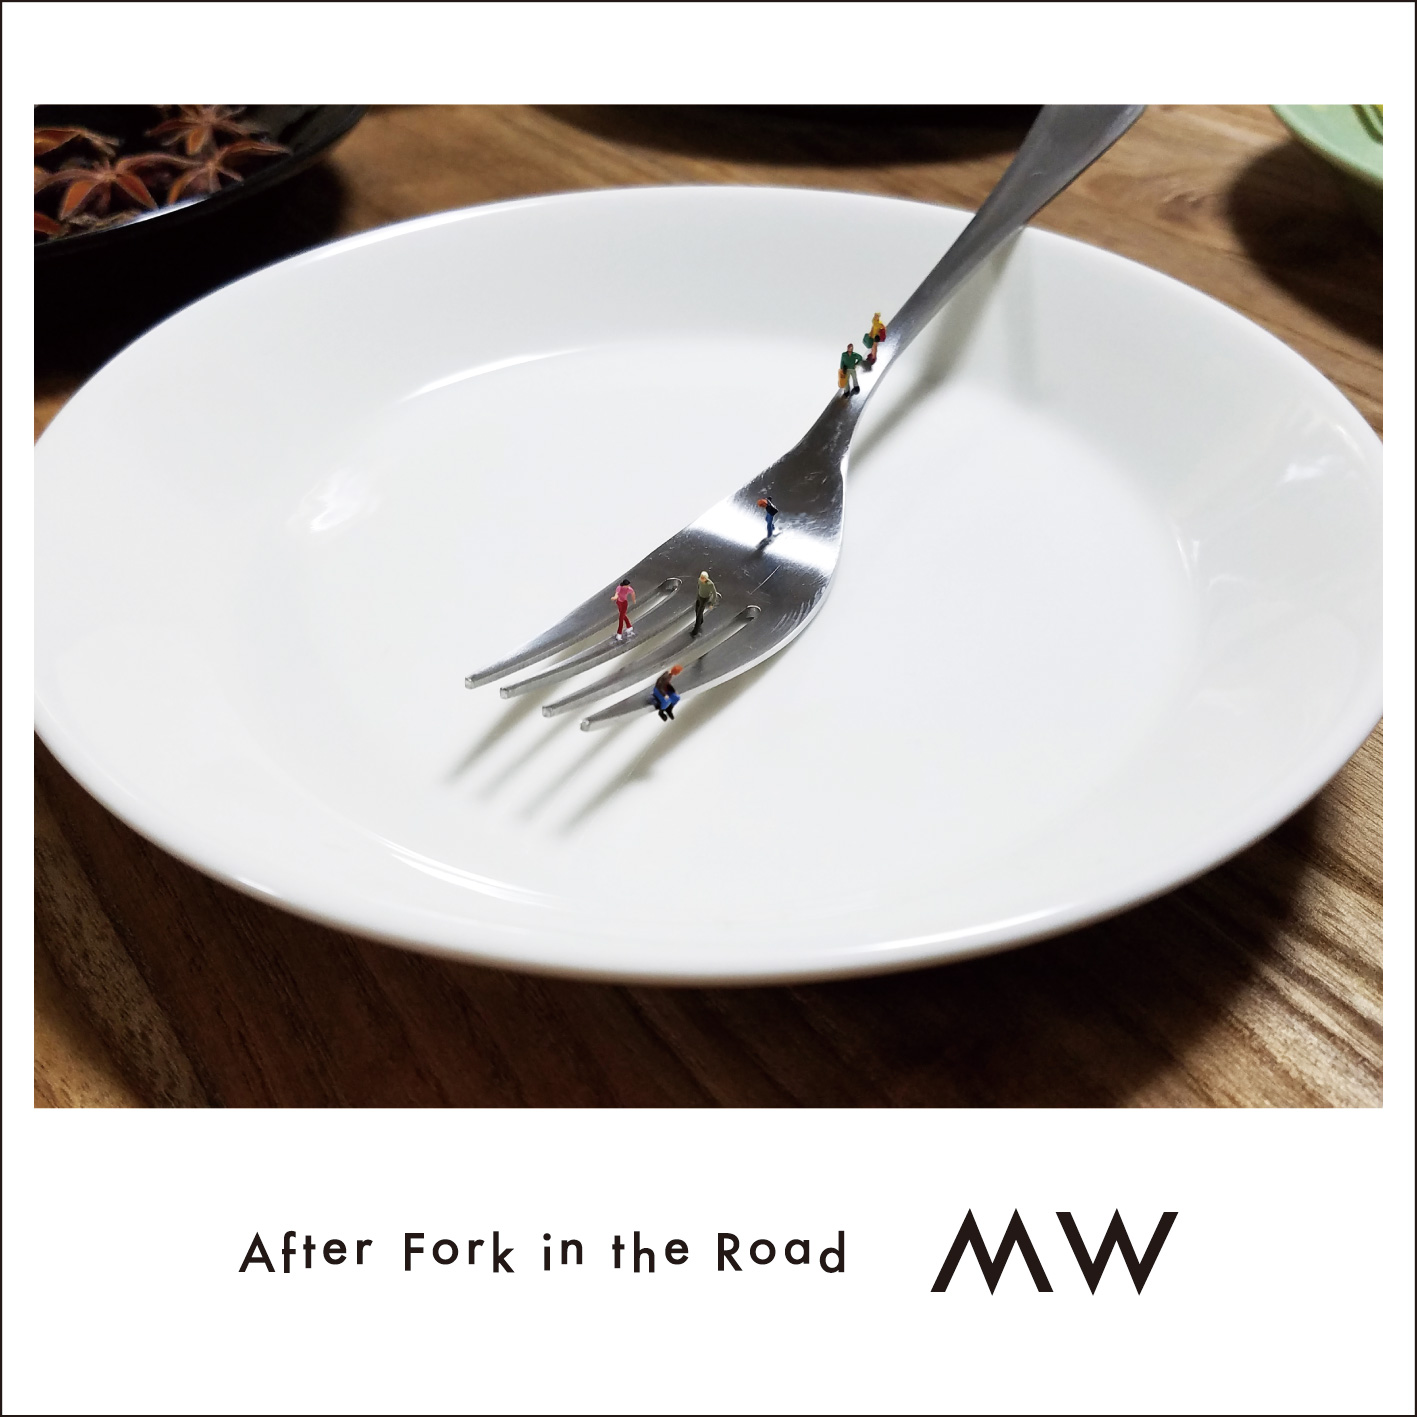 After Fork in the Rood